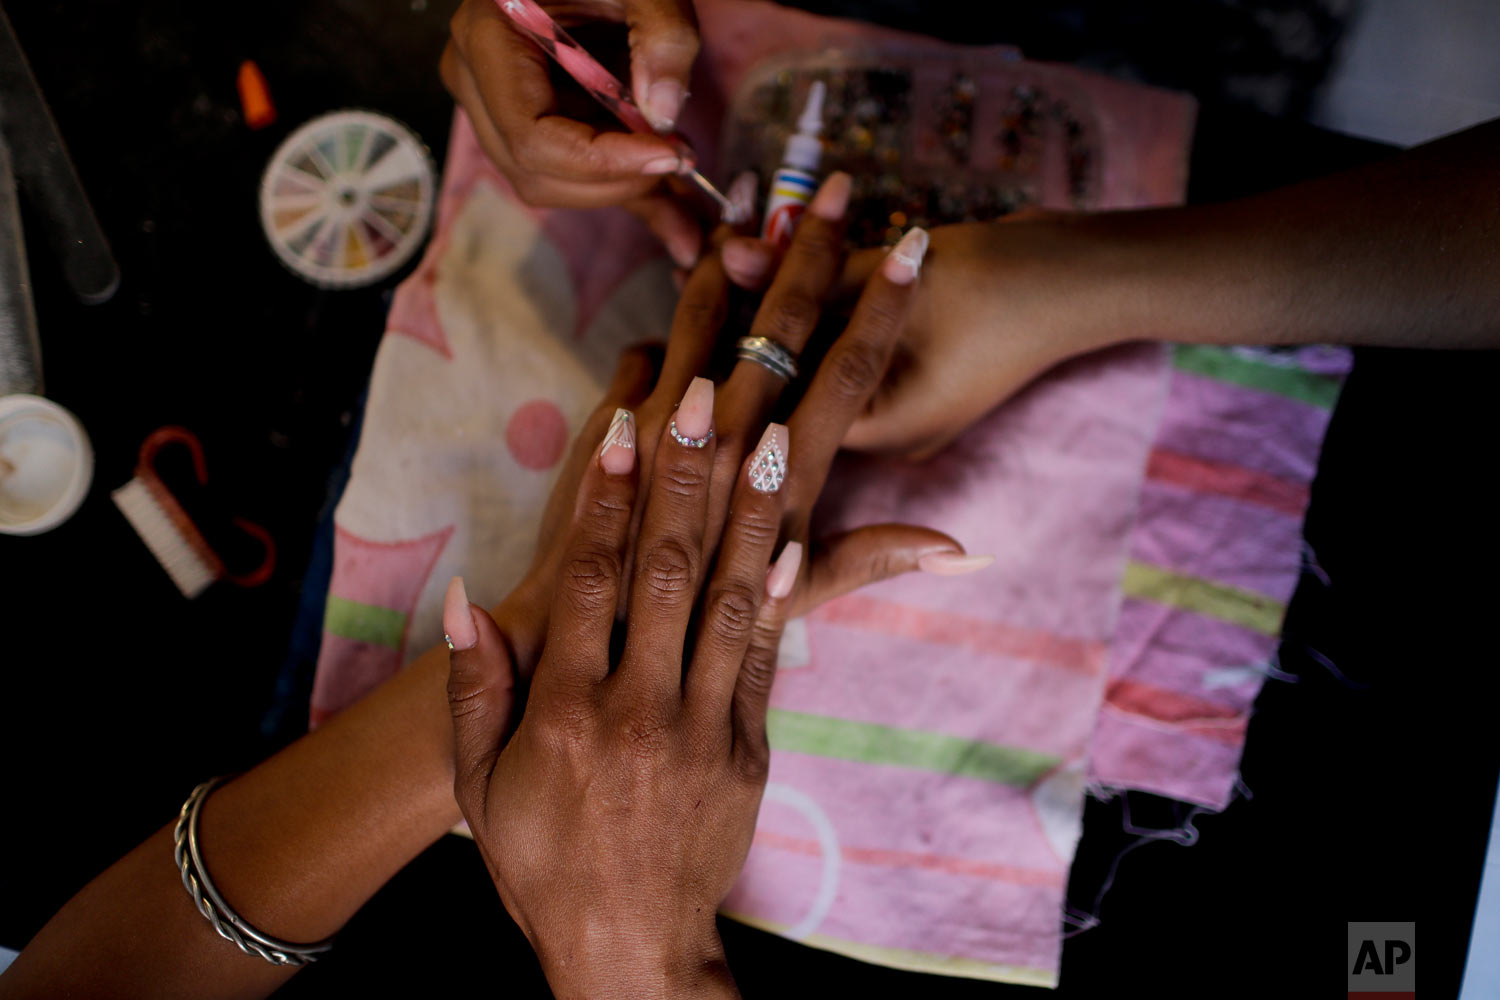 Yaris Colina gets her nails done at a beauty salon in Caracas, Venezuela, Friday, March 22, 2019.  (AP Photo/Natacha Pisarenko)